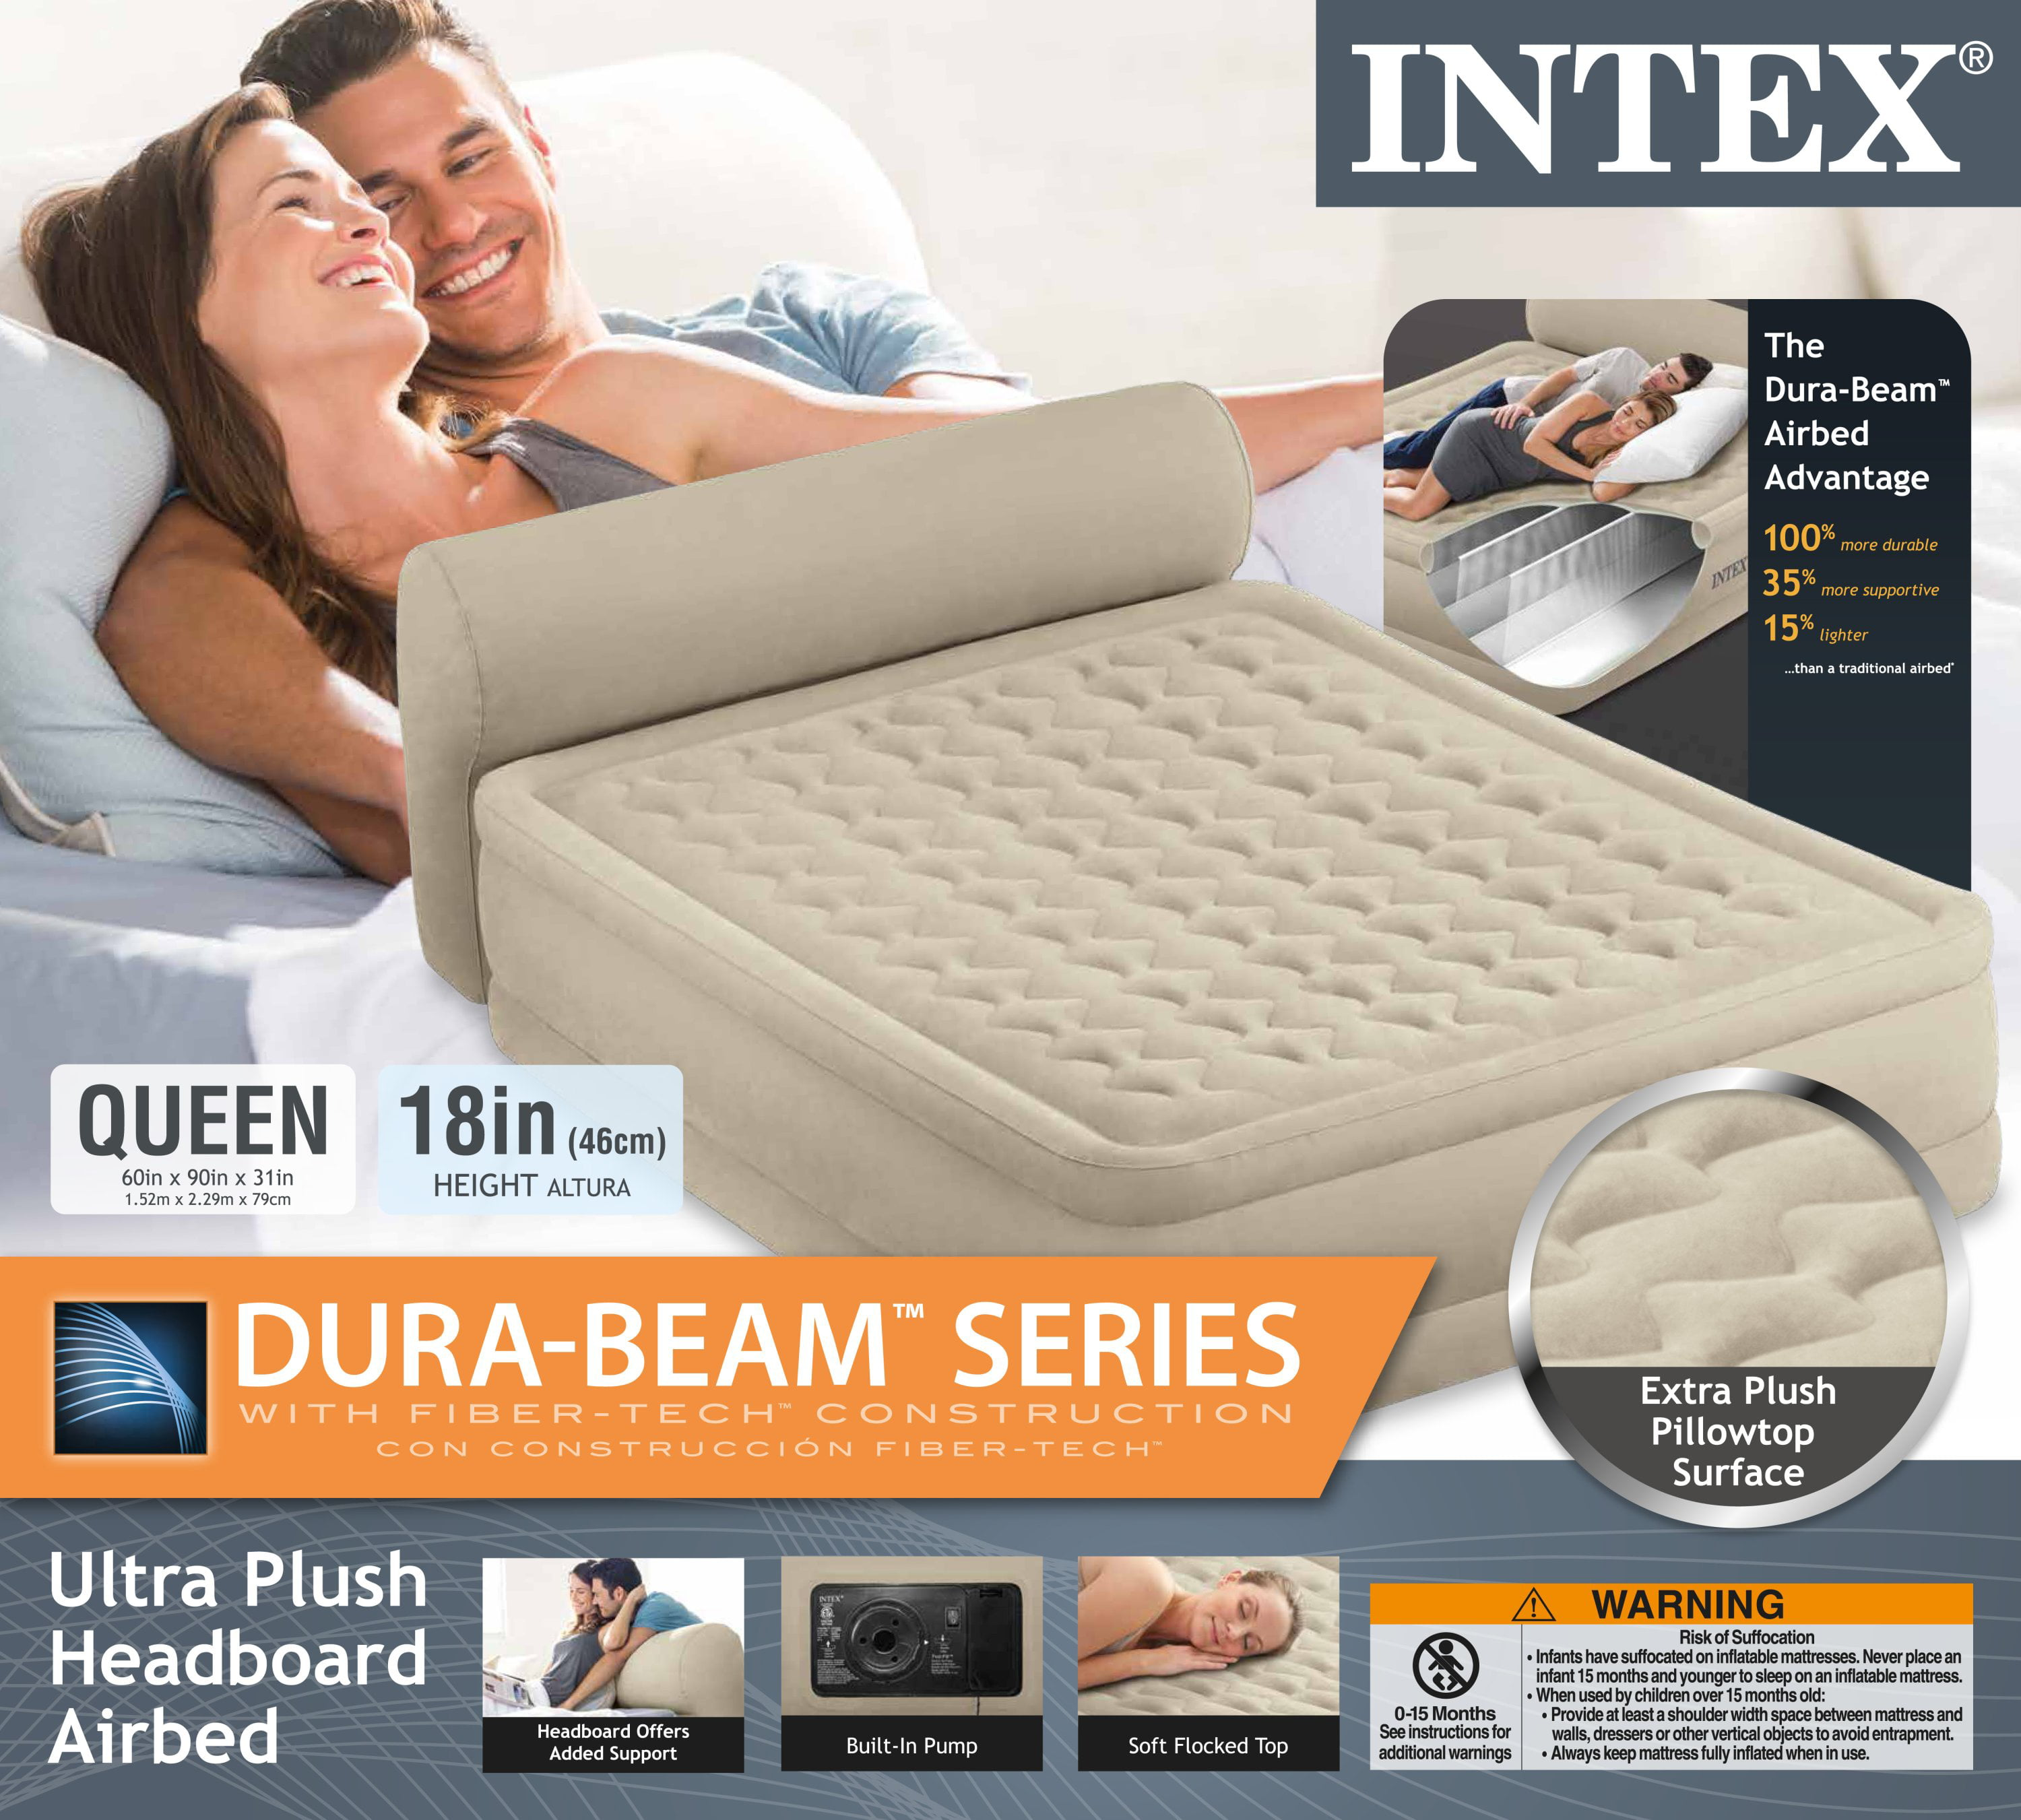 Intex 18 Queen Dura Beam Ultra Plush Headboard Airbed Mattress